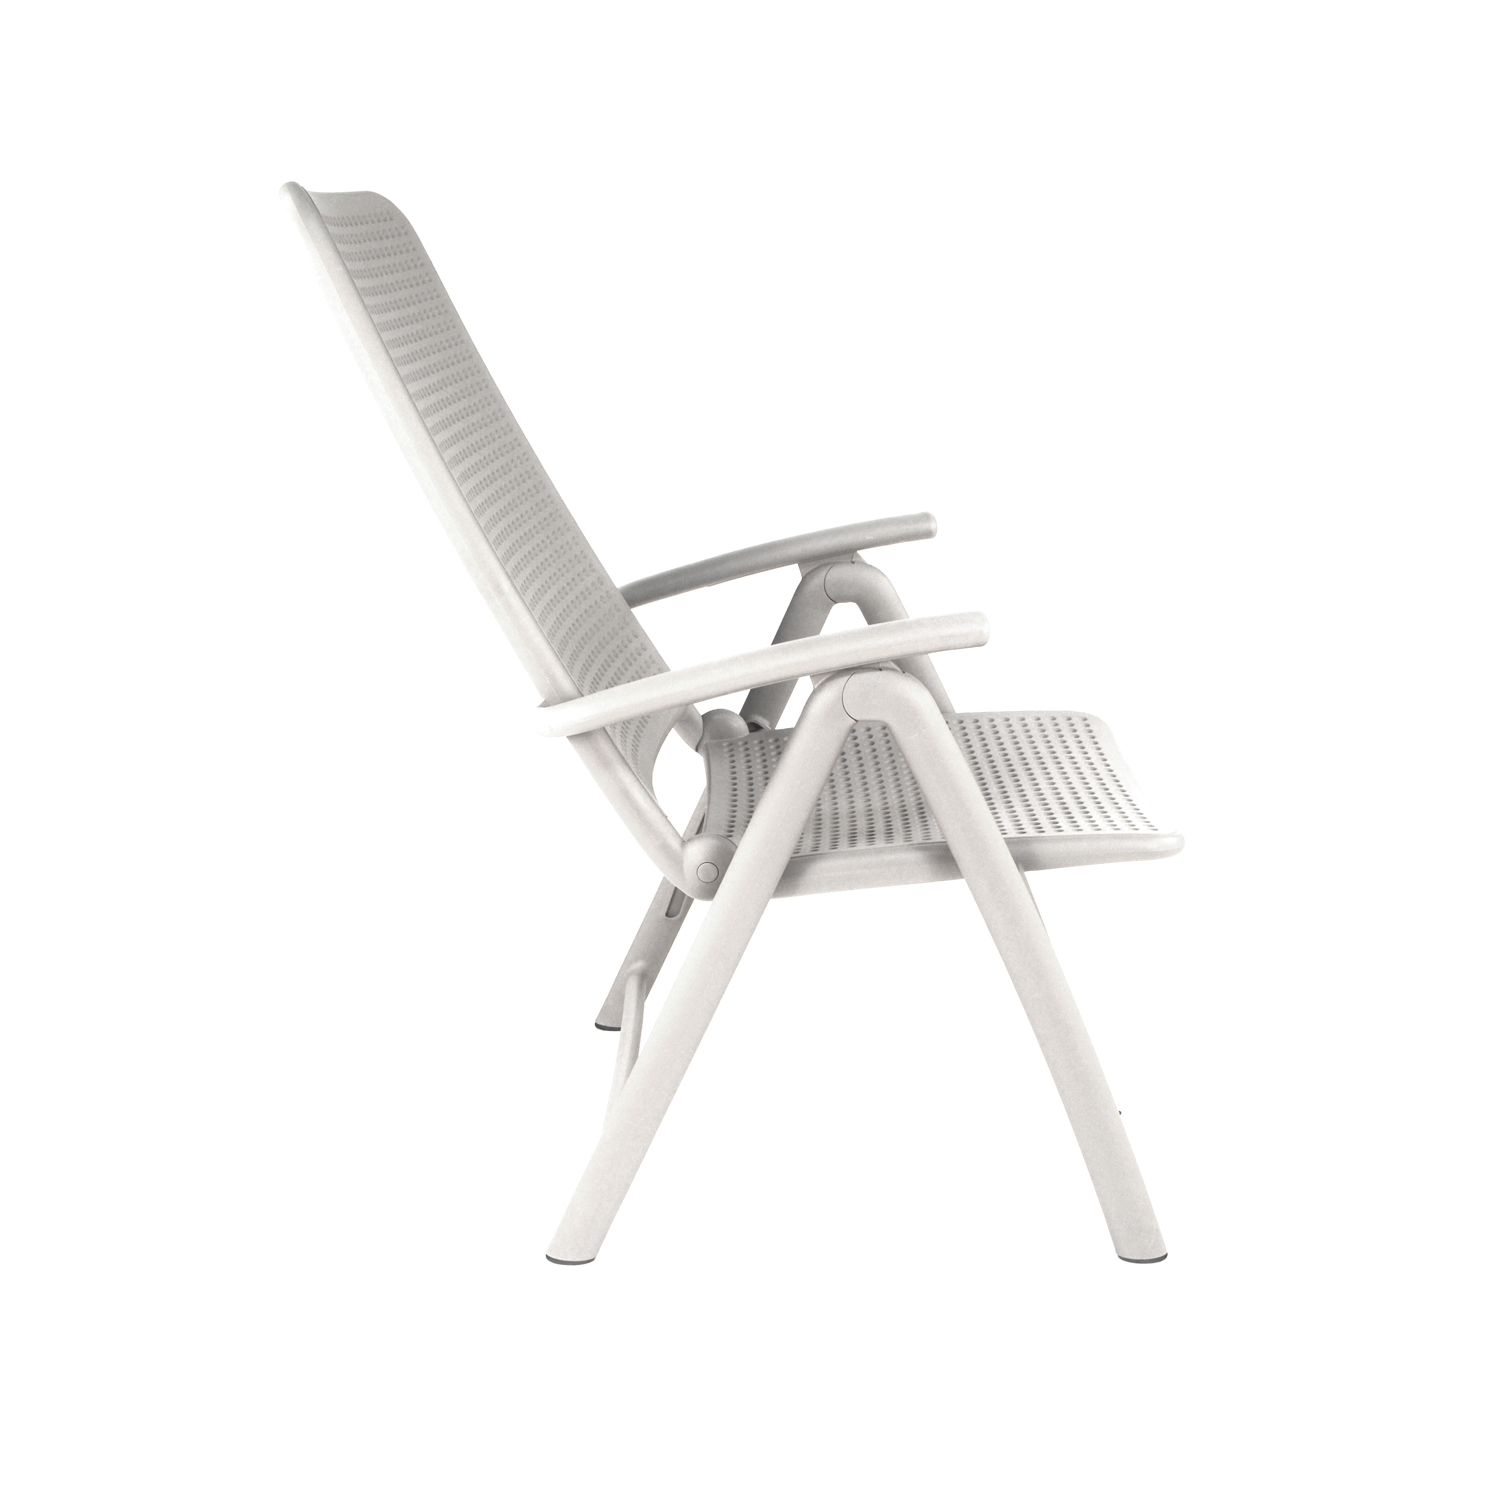 Darsena Chair reclined position 3